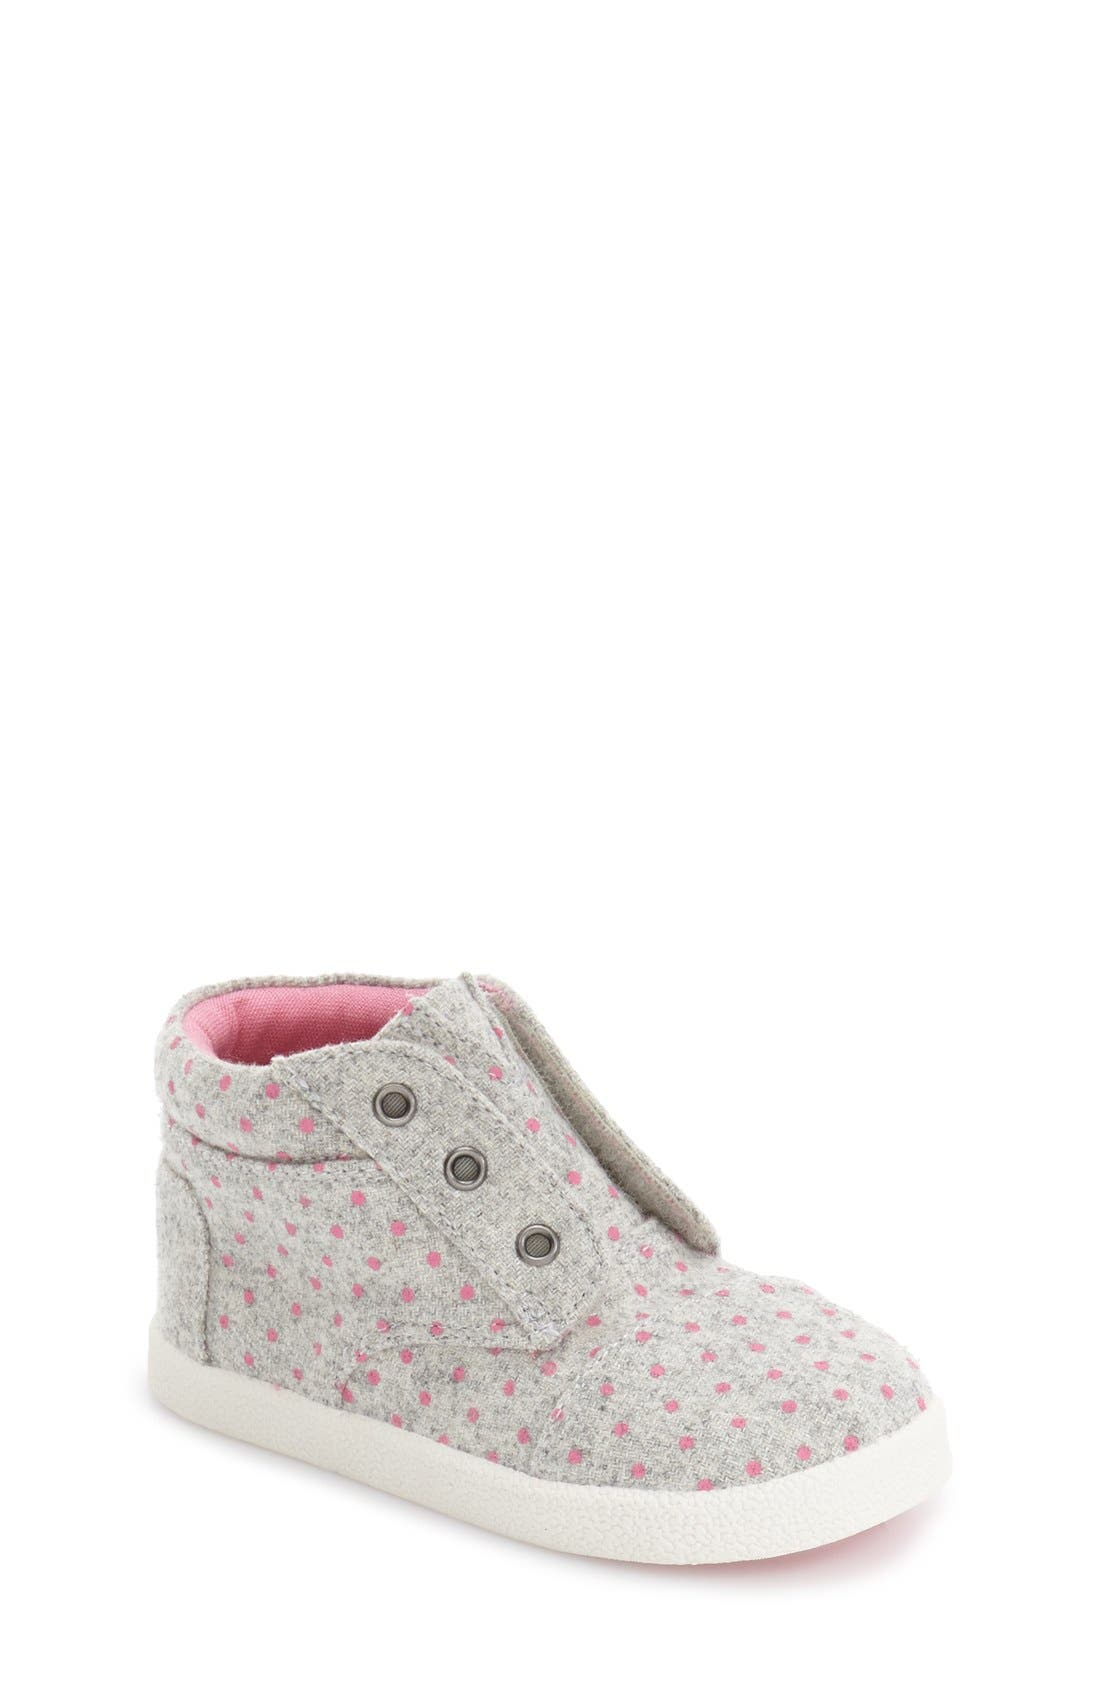 TOMS Paseo High Top Sneaker Baby Walker & Toddler